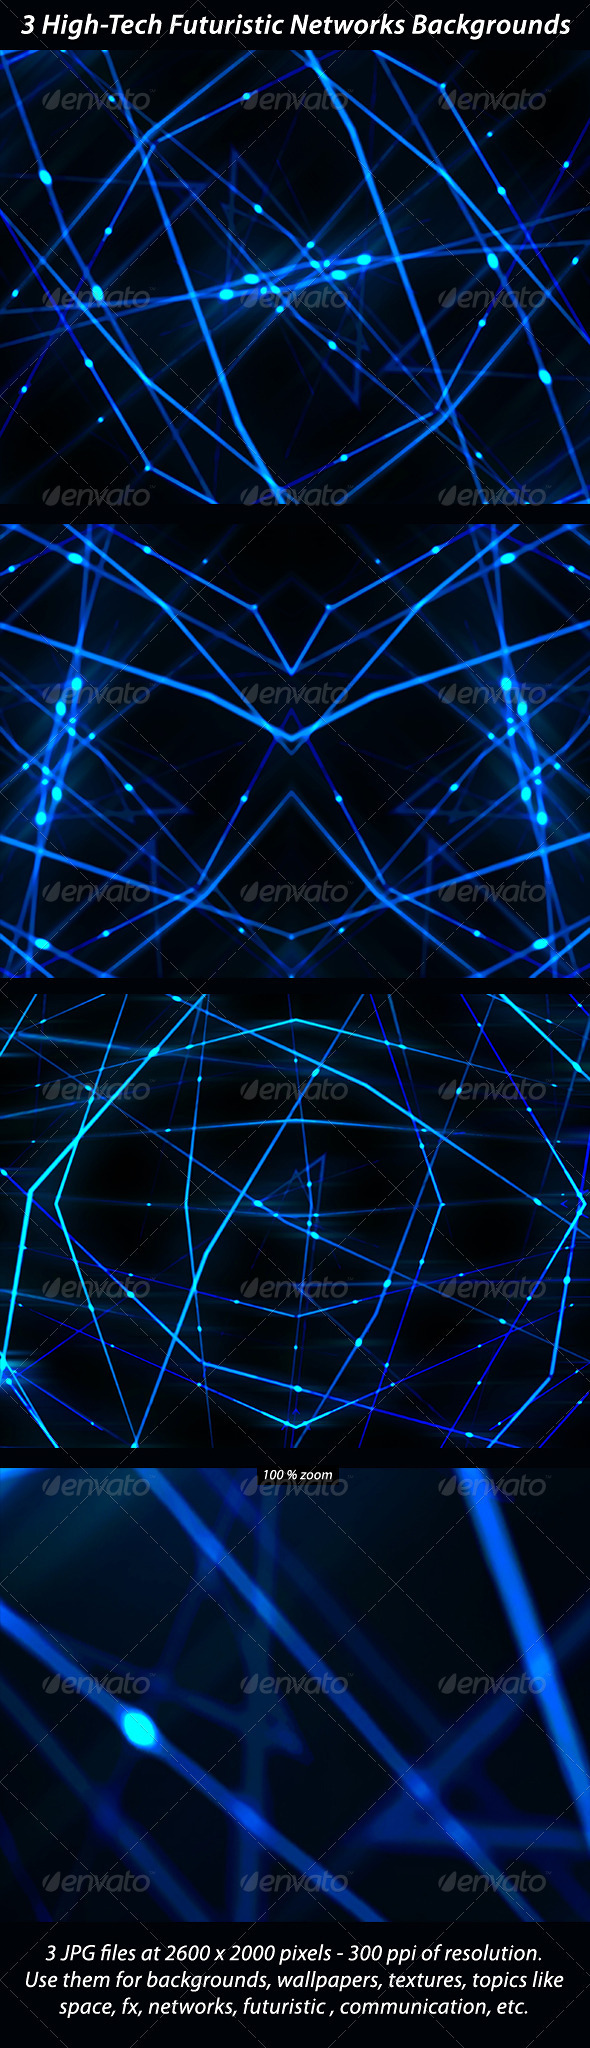 3 High Tech Futuristic Networks Backgrounds - Tech / Futuristic Backgrounds